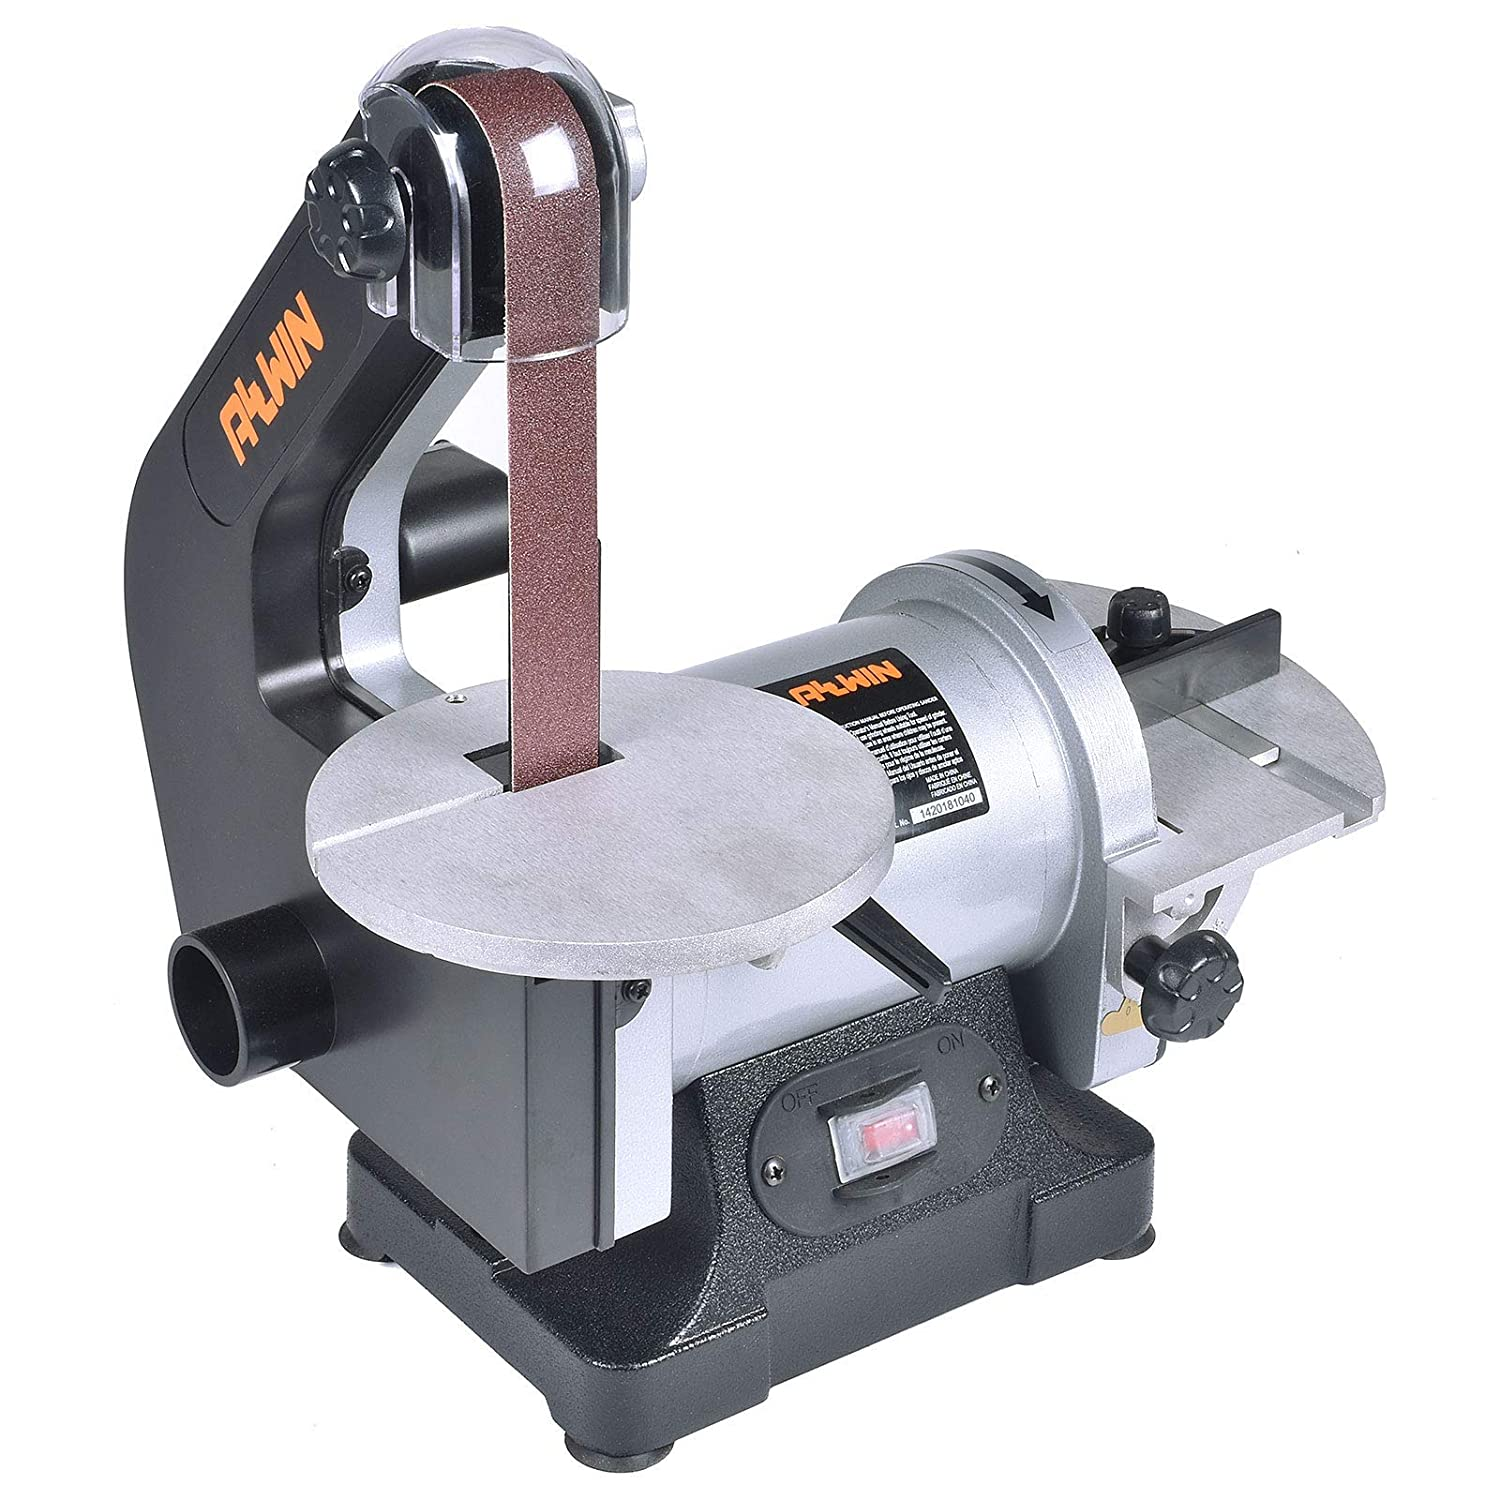 ALLWIN 86174 Disc & Belt Sanders product image 1